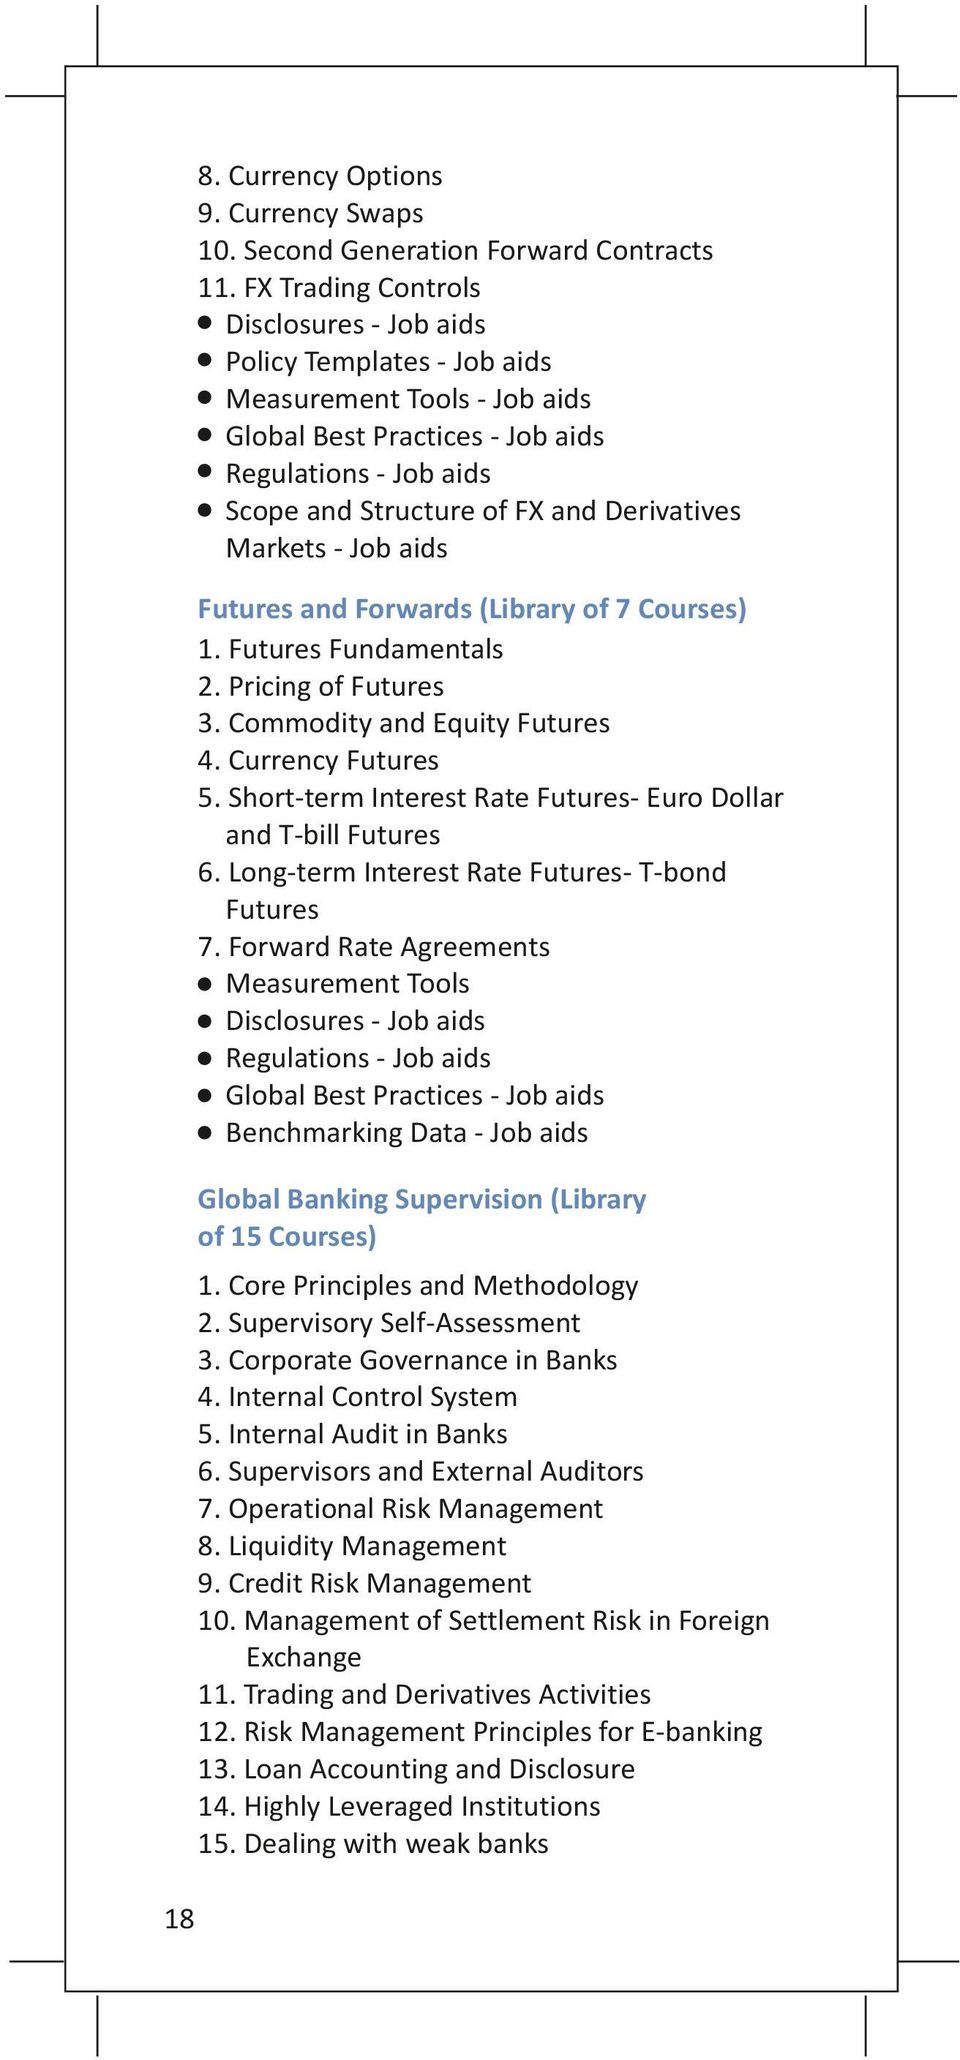 Markets - Job aids Futures and Forwards (Library of 7 Courses) 1. Futures Fundamentals 2. Pricing of Futures 3. Commodity and Equity Futures 4. Currency Futures 5.